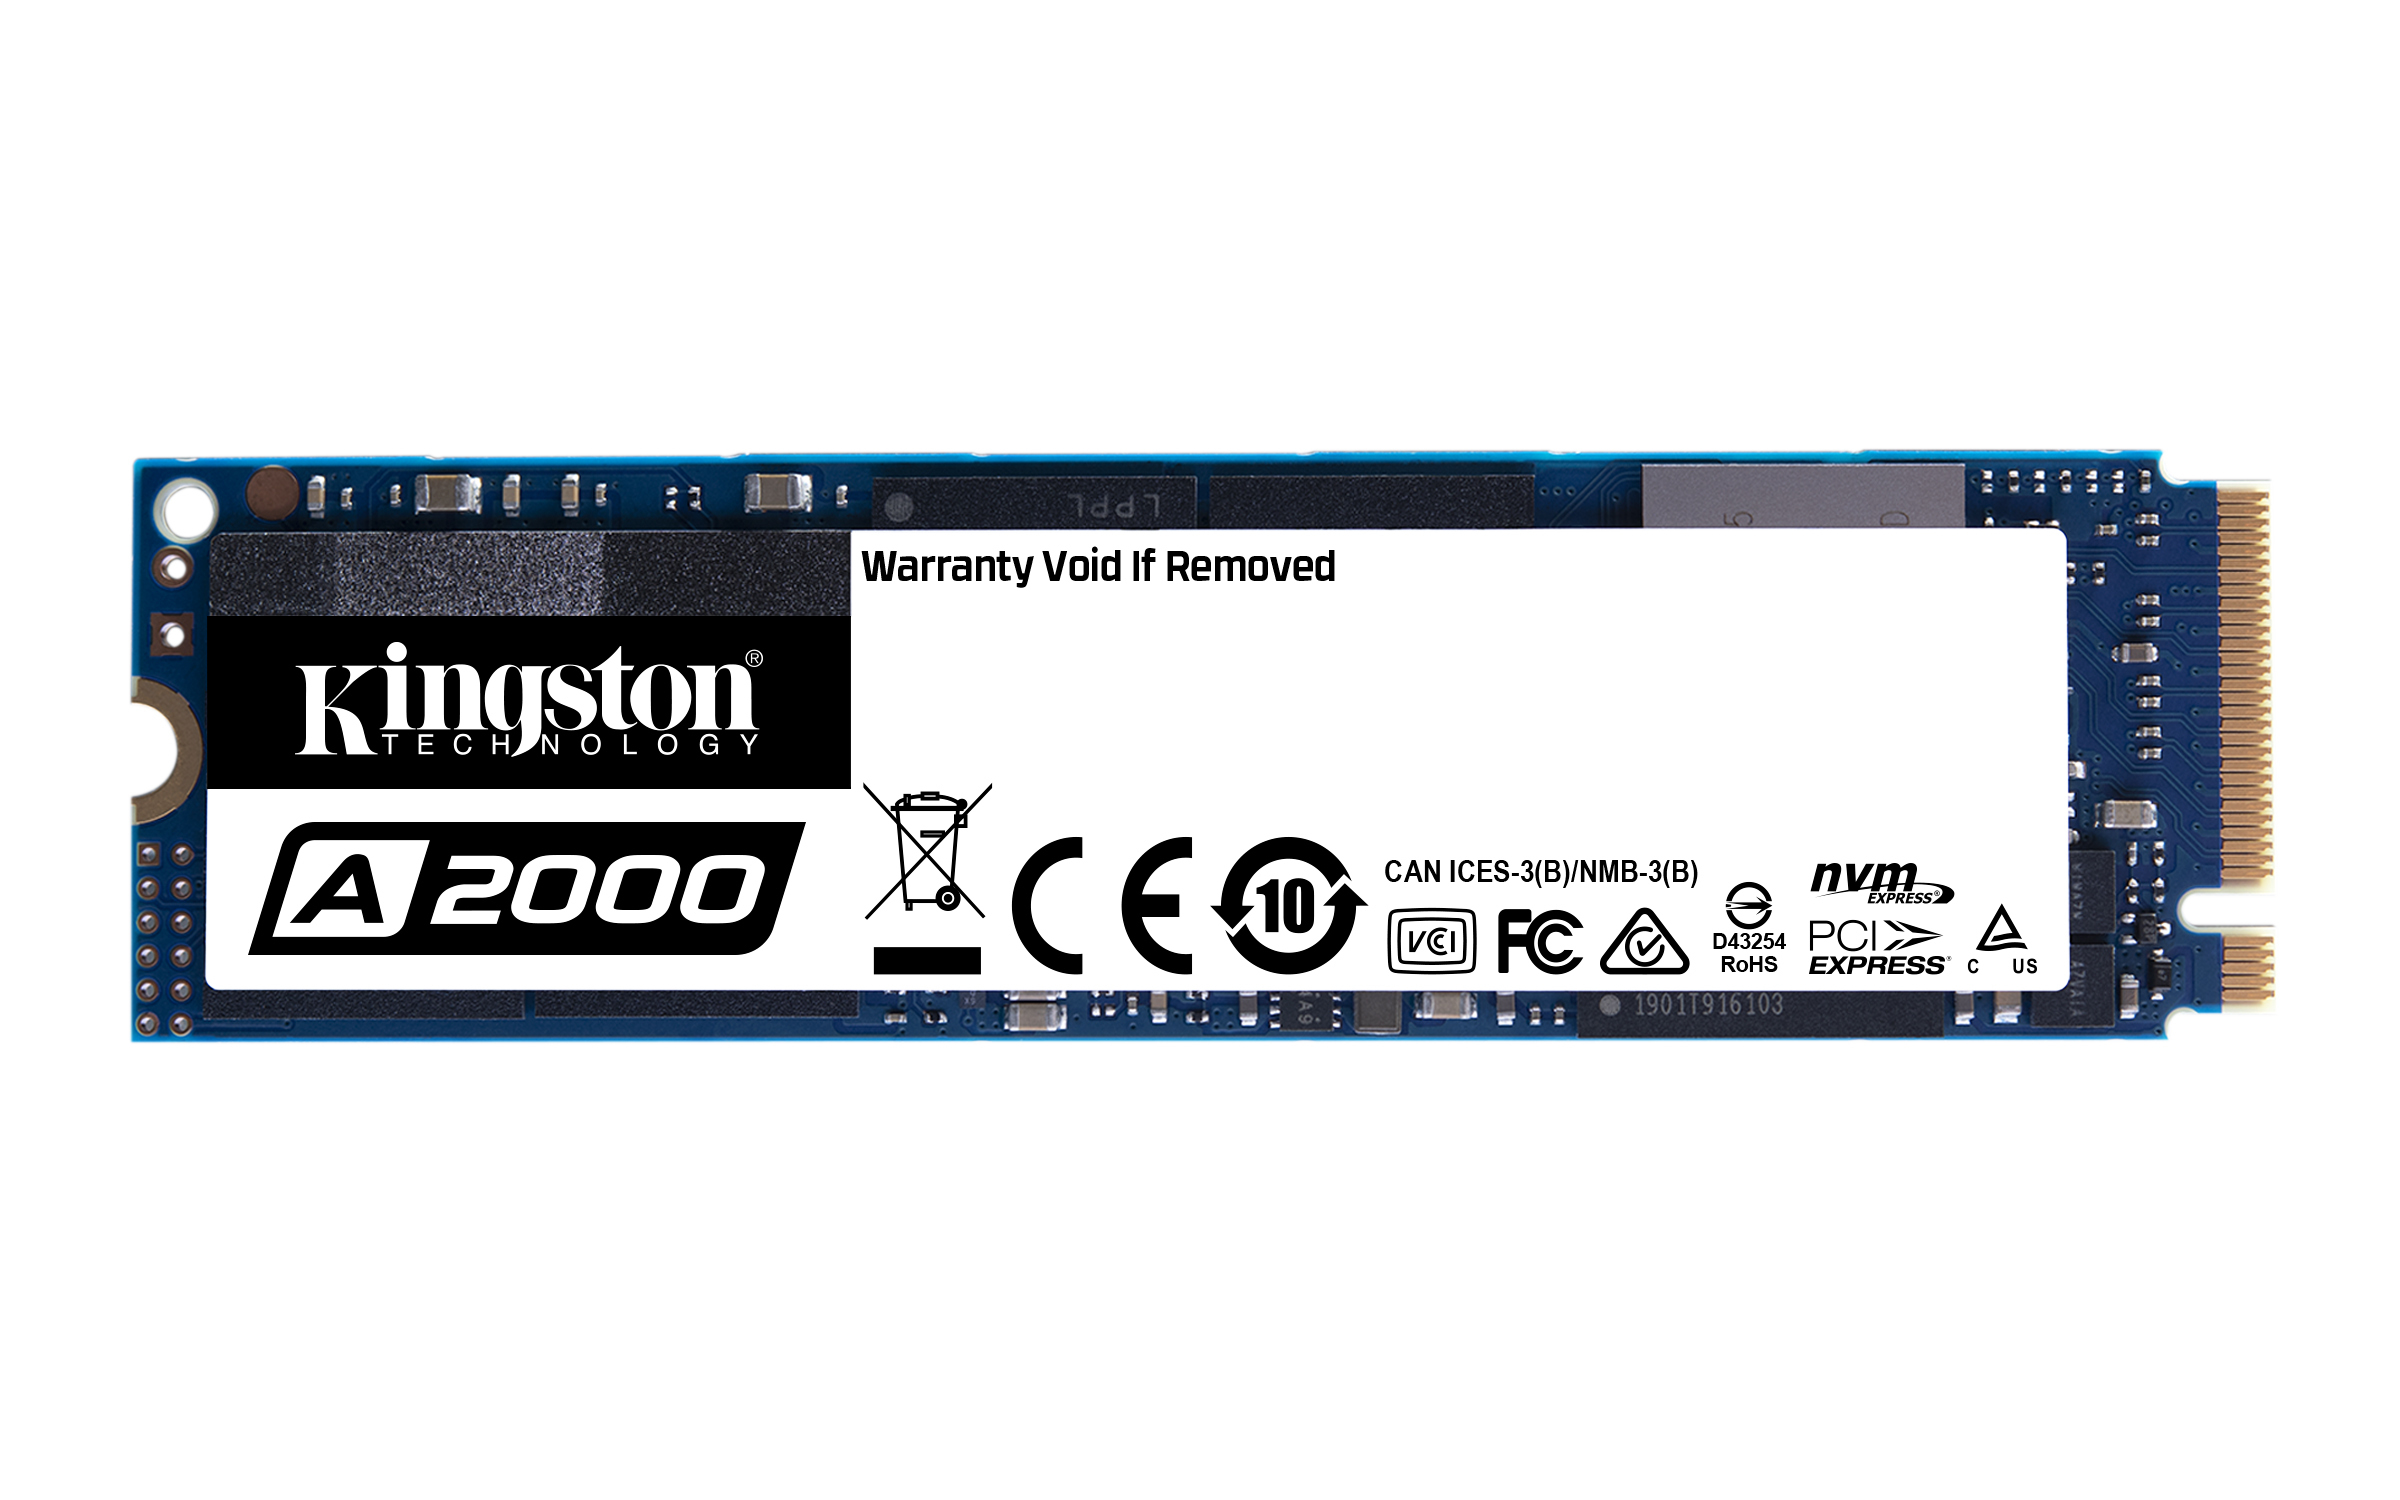 KINGSTON SSD A2000 1TB M.2 PCIe NVMe Gen 3.0